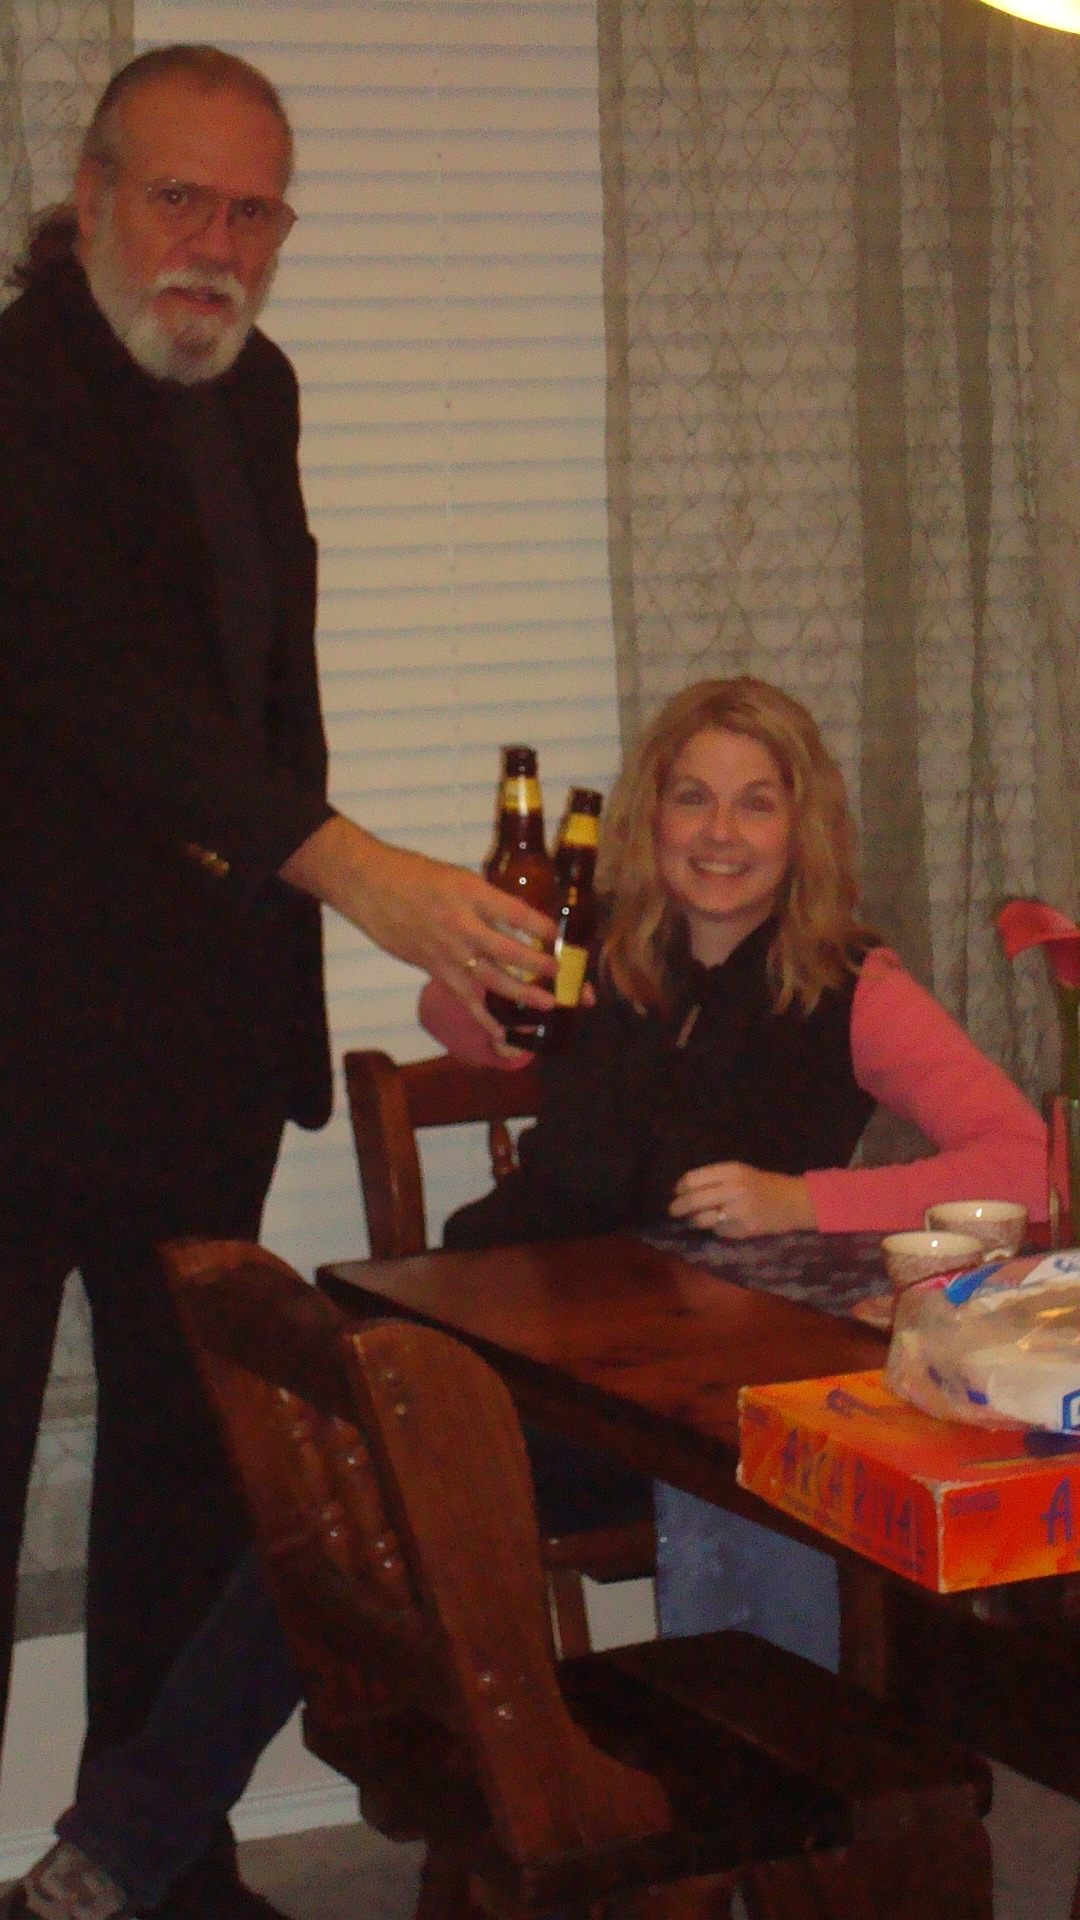 A little bit of beer with Heather and Demetrios